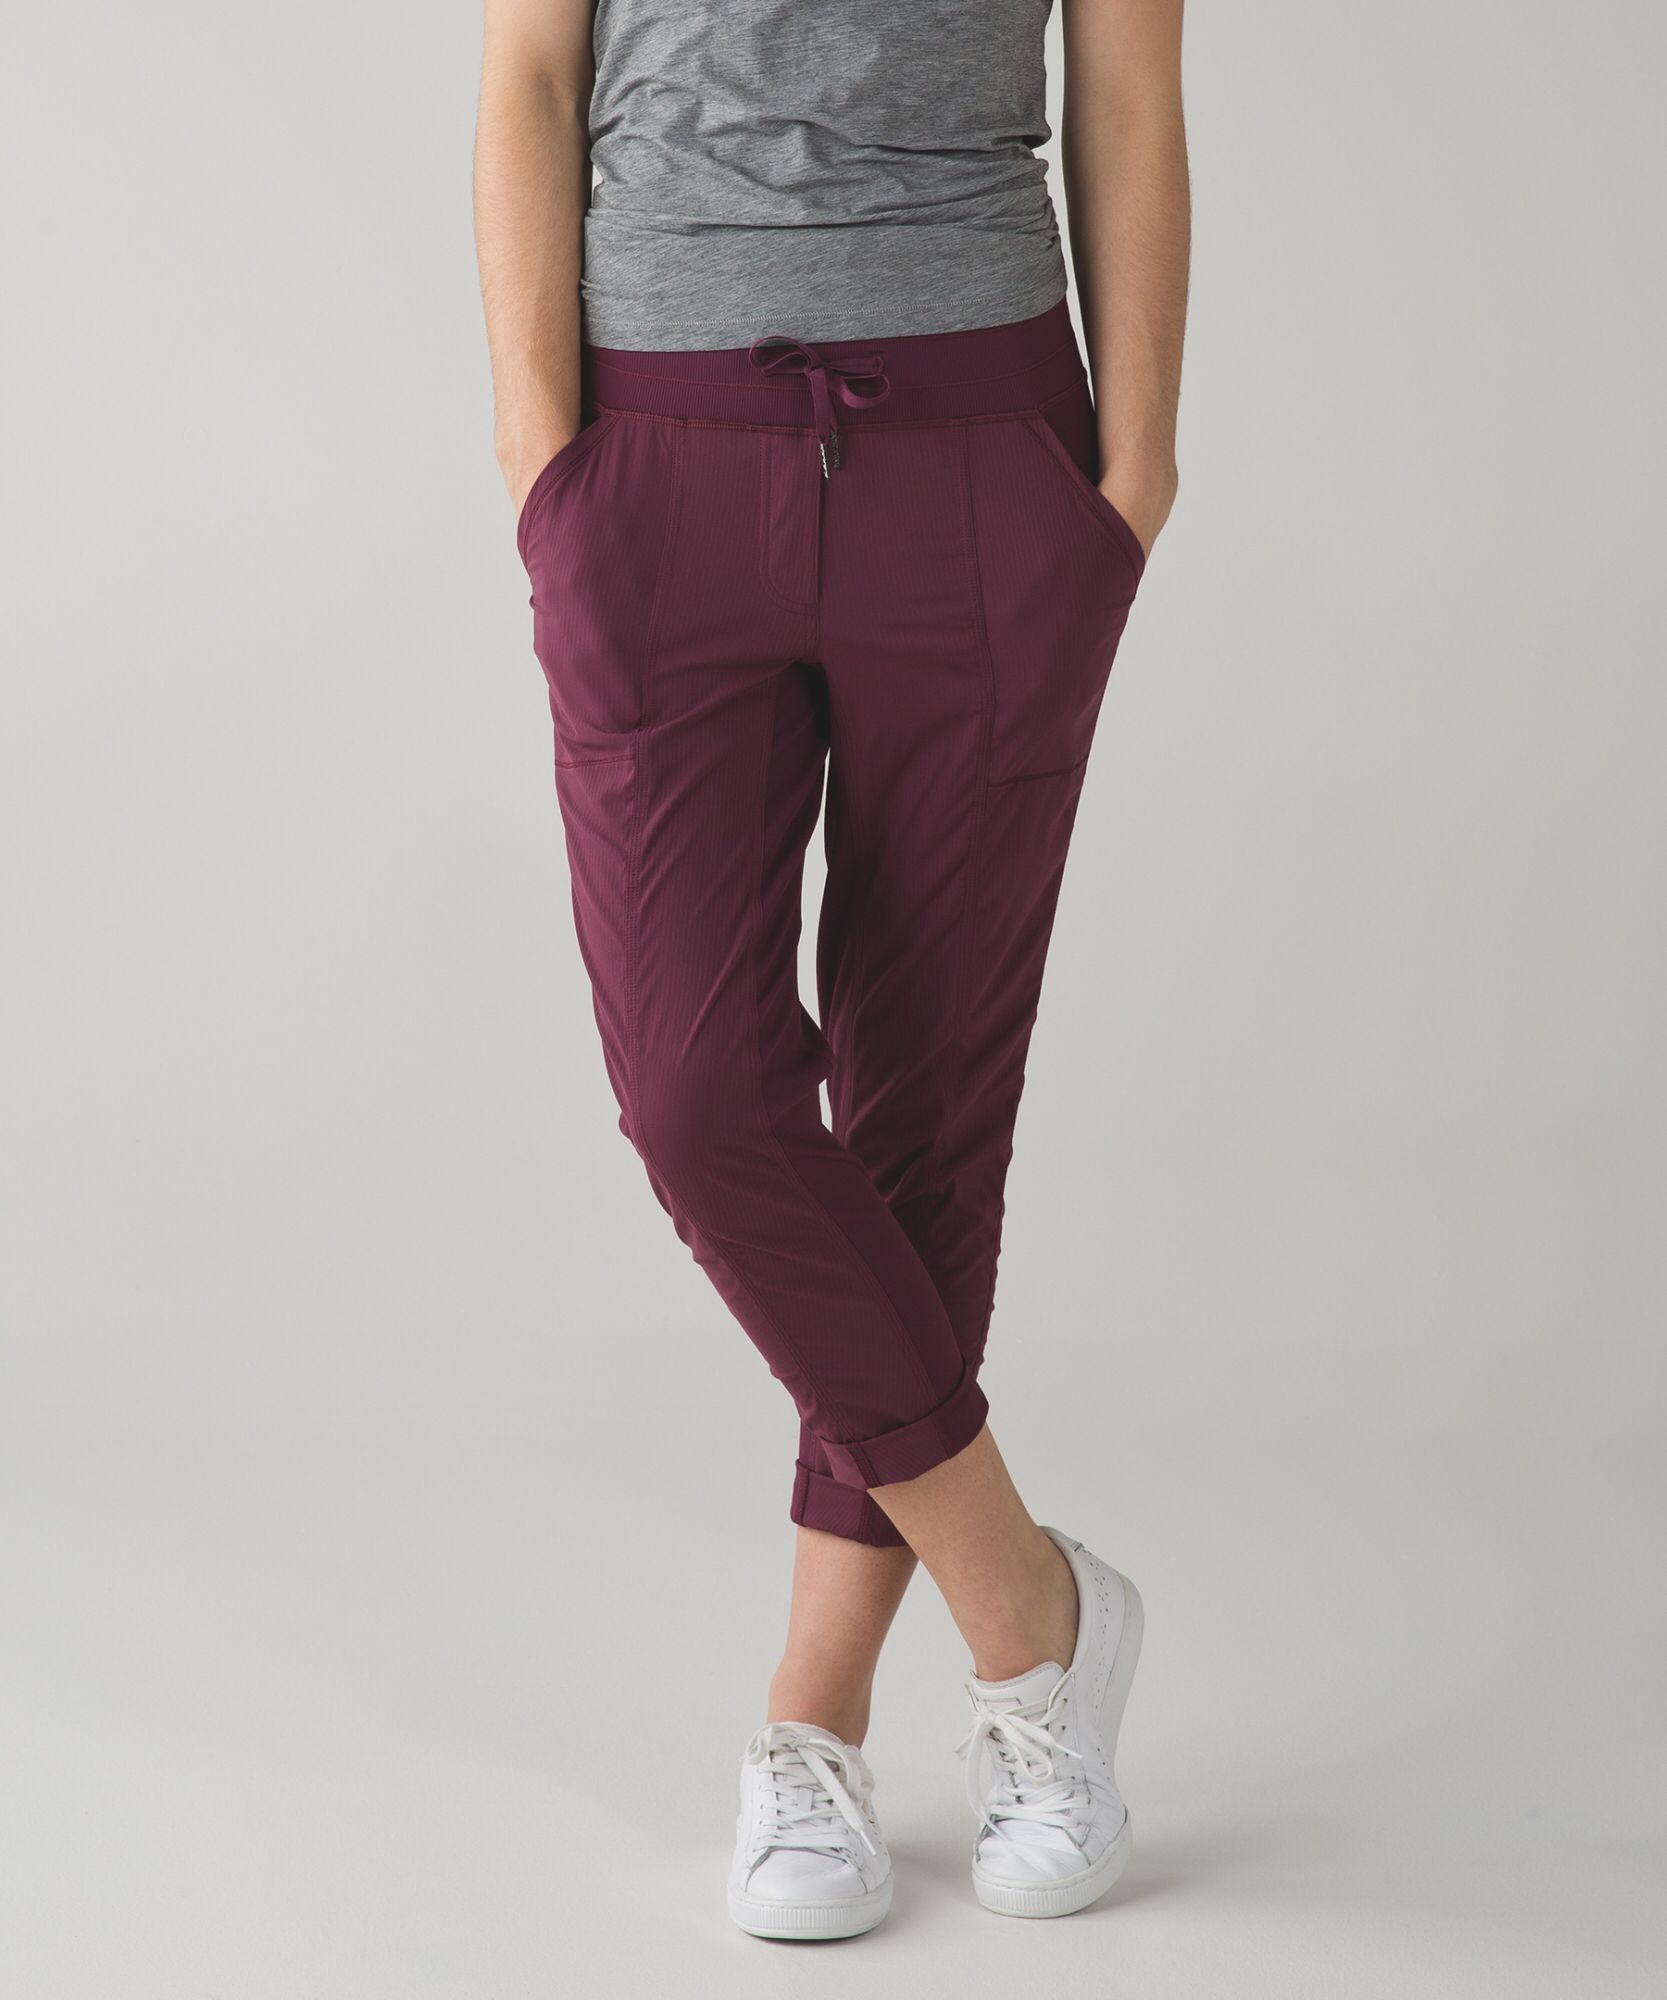 70d78986bc78b Lululemon - Street To Studio Pant II *Unlined   Gym and Dance ...